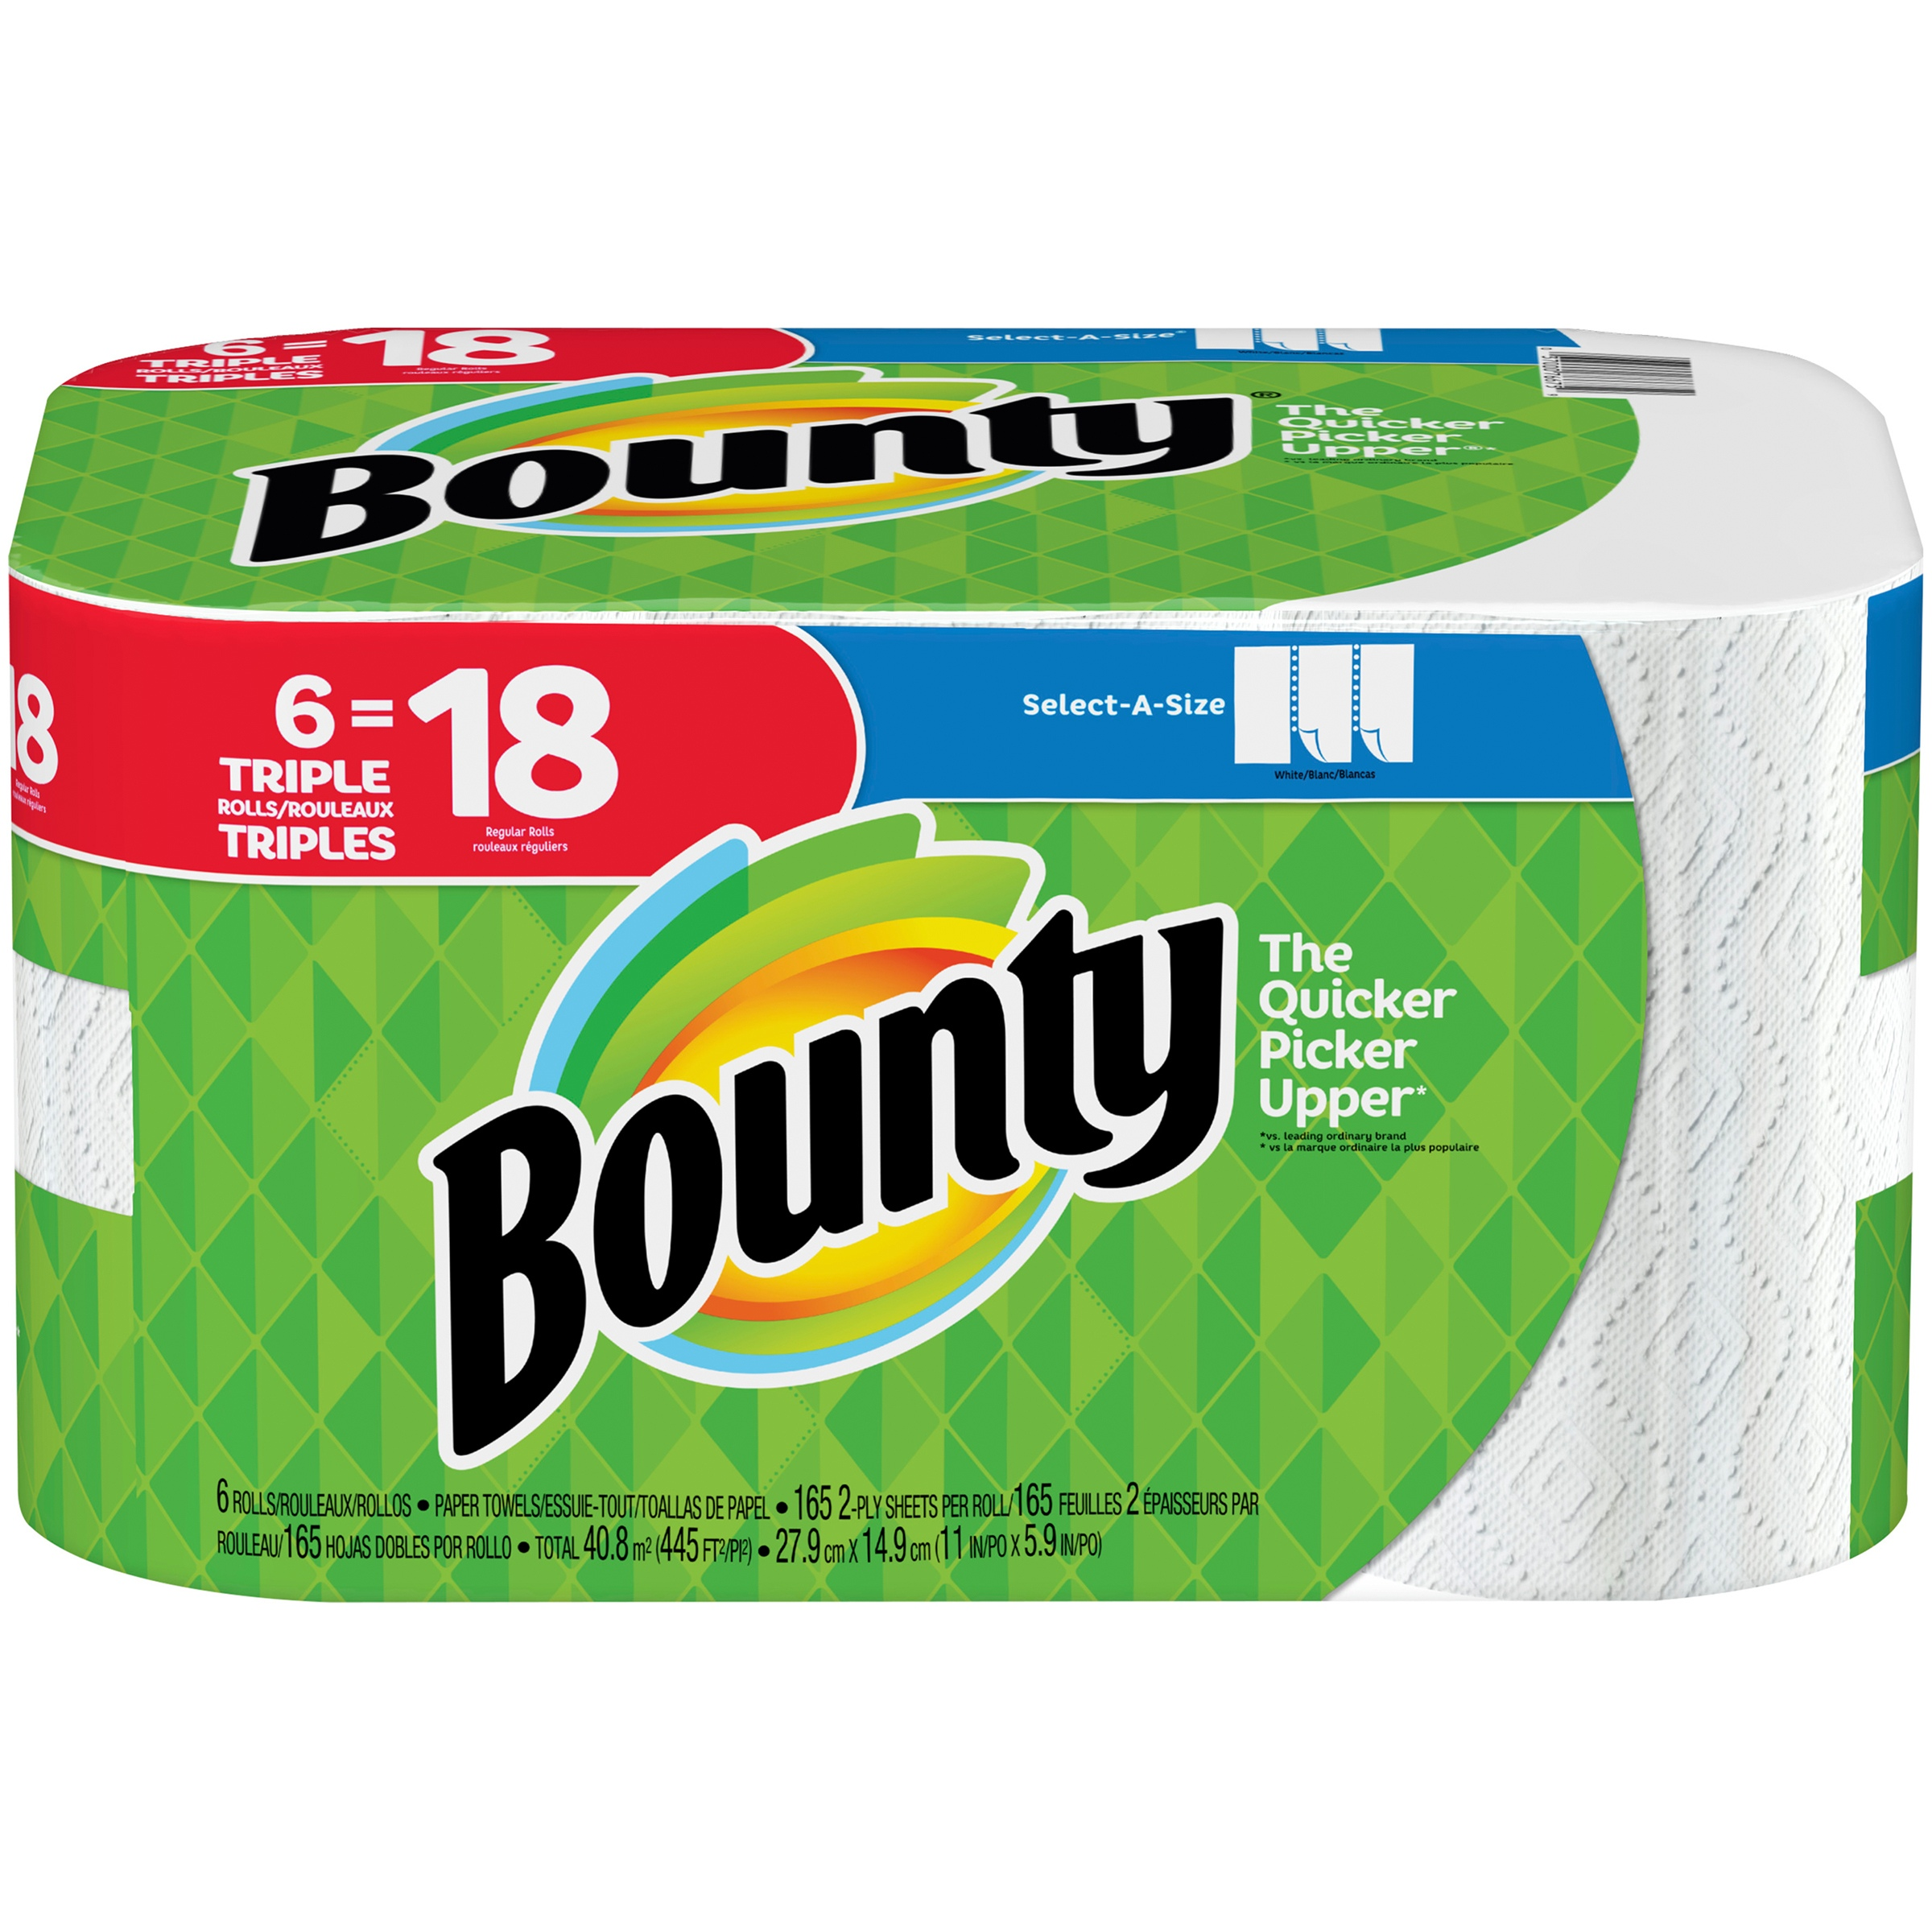 Bounty Paper Towels, Select-A-Size, 6 Triple Rolls